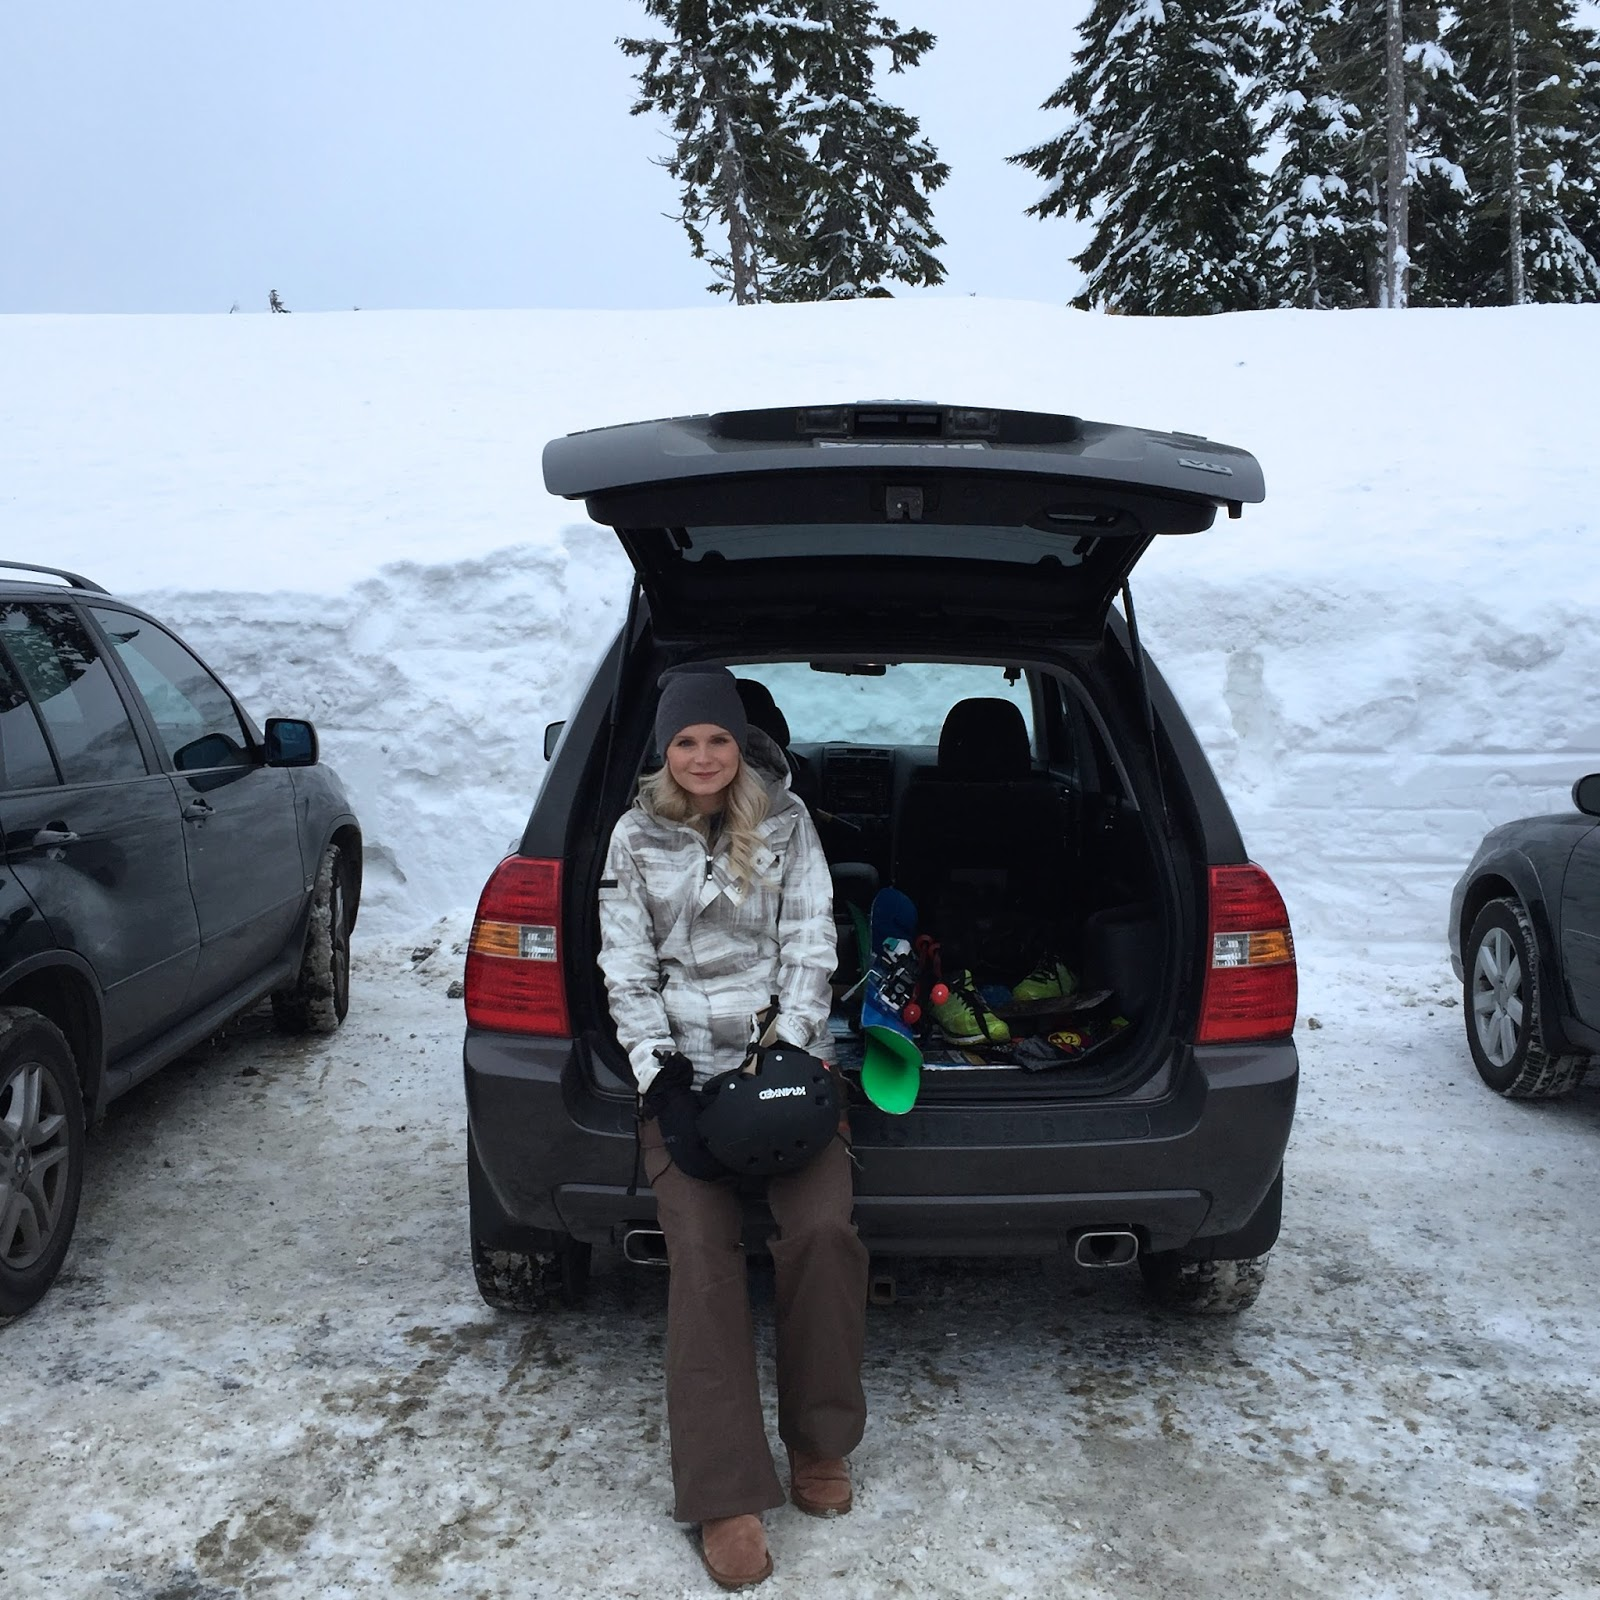 a women sits on the bumper on the car, waiting to go  skiing